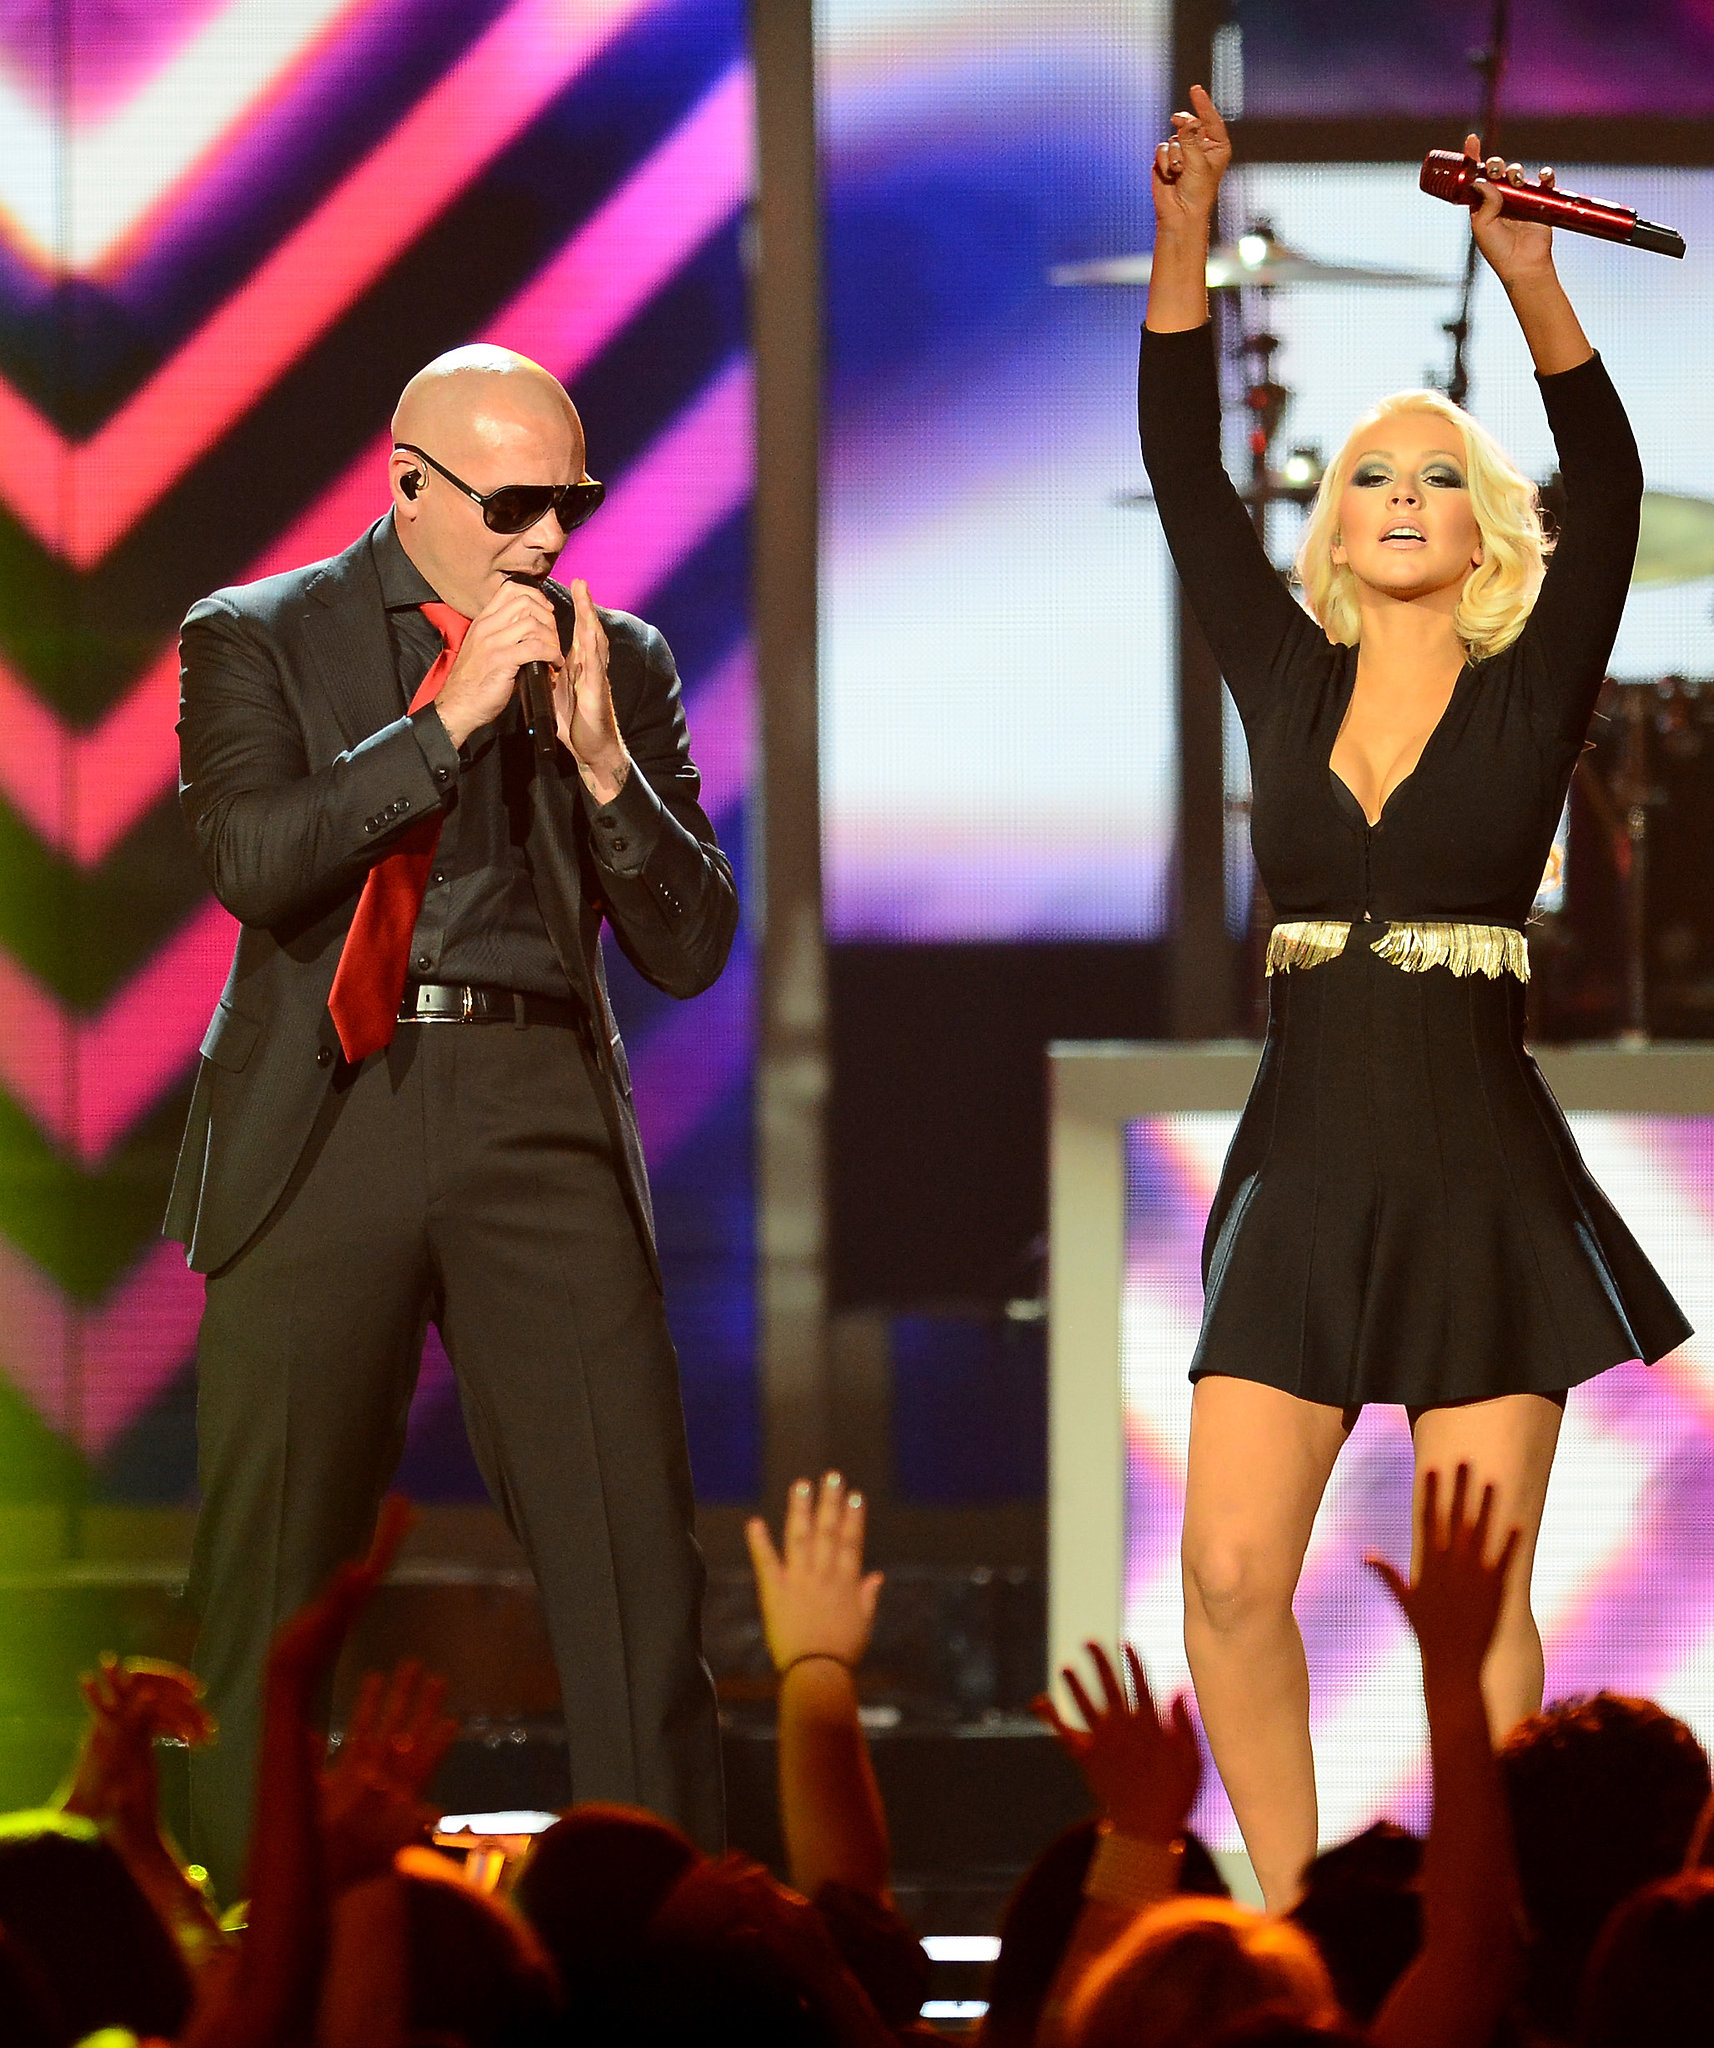 Pitbull and Christi